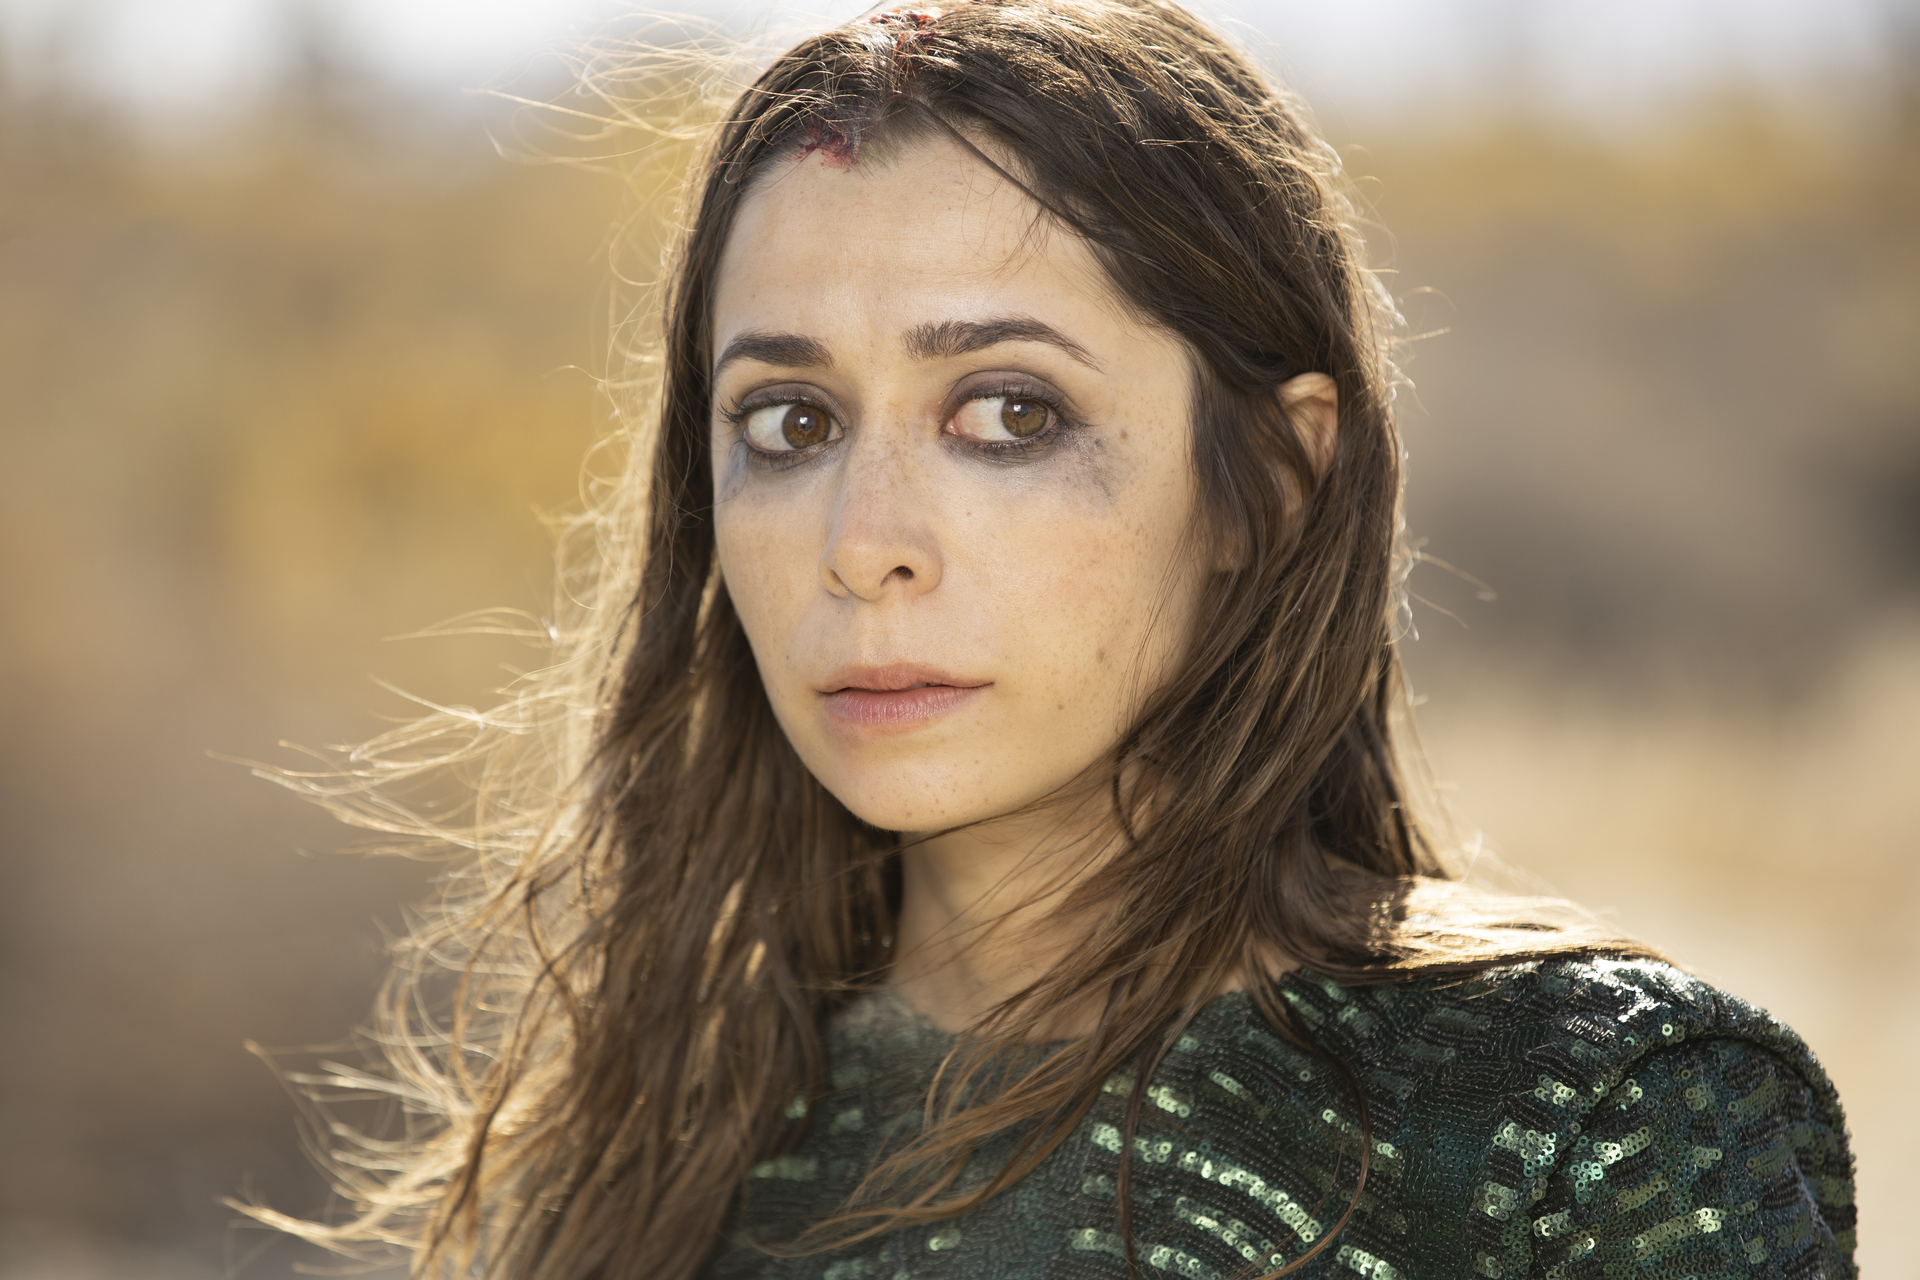 Cristin Milioti as Hazel in HBO Max's Made for Love.